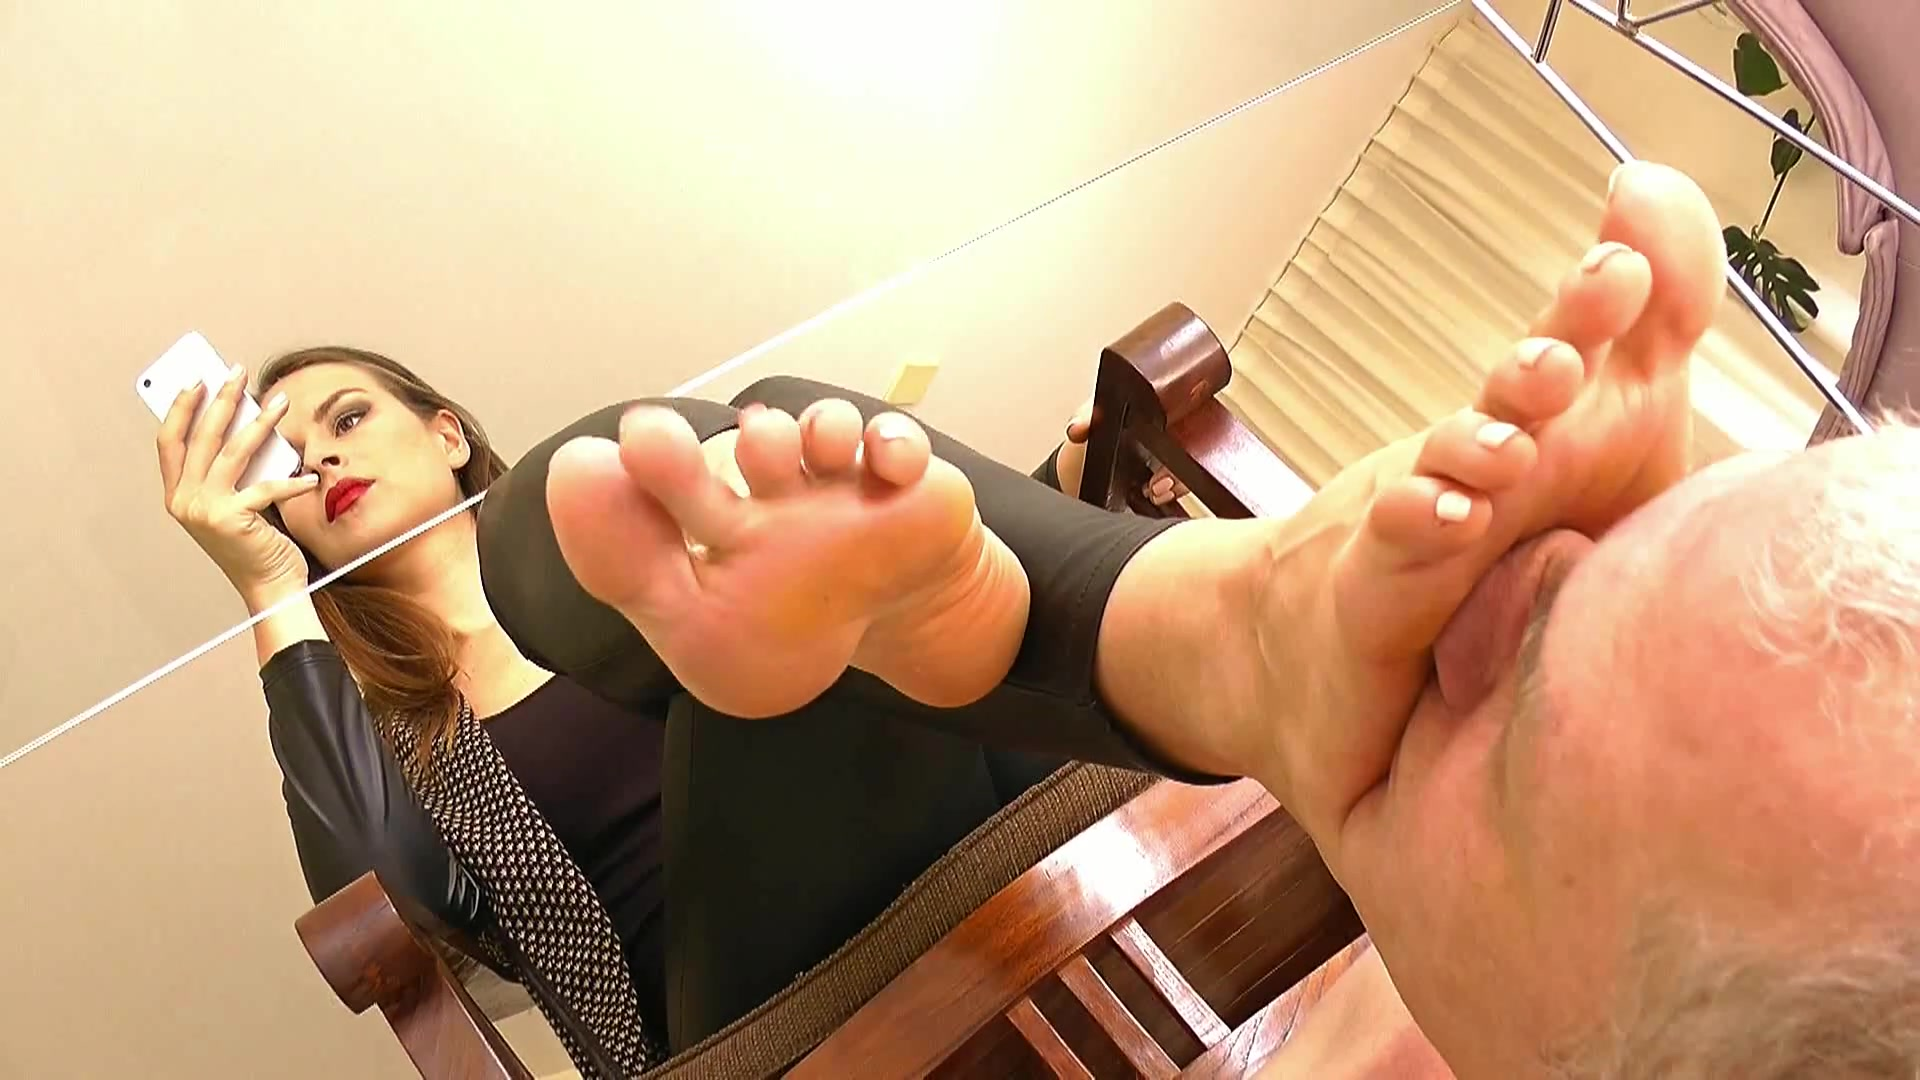 Do most guys get turned onattracted to a woman's feet